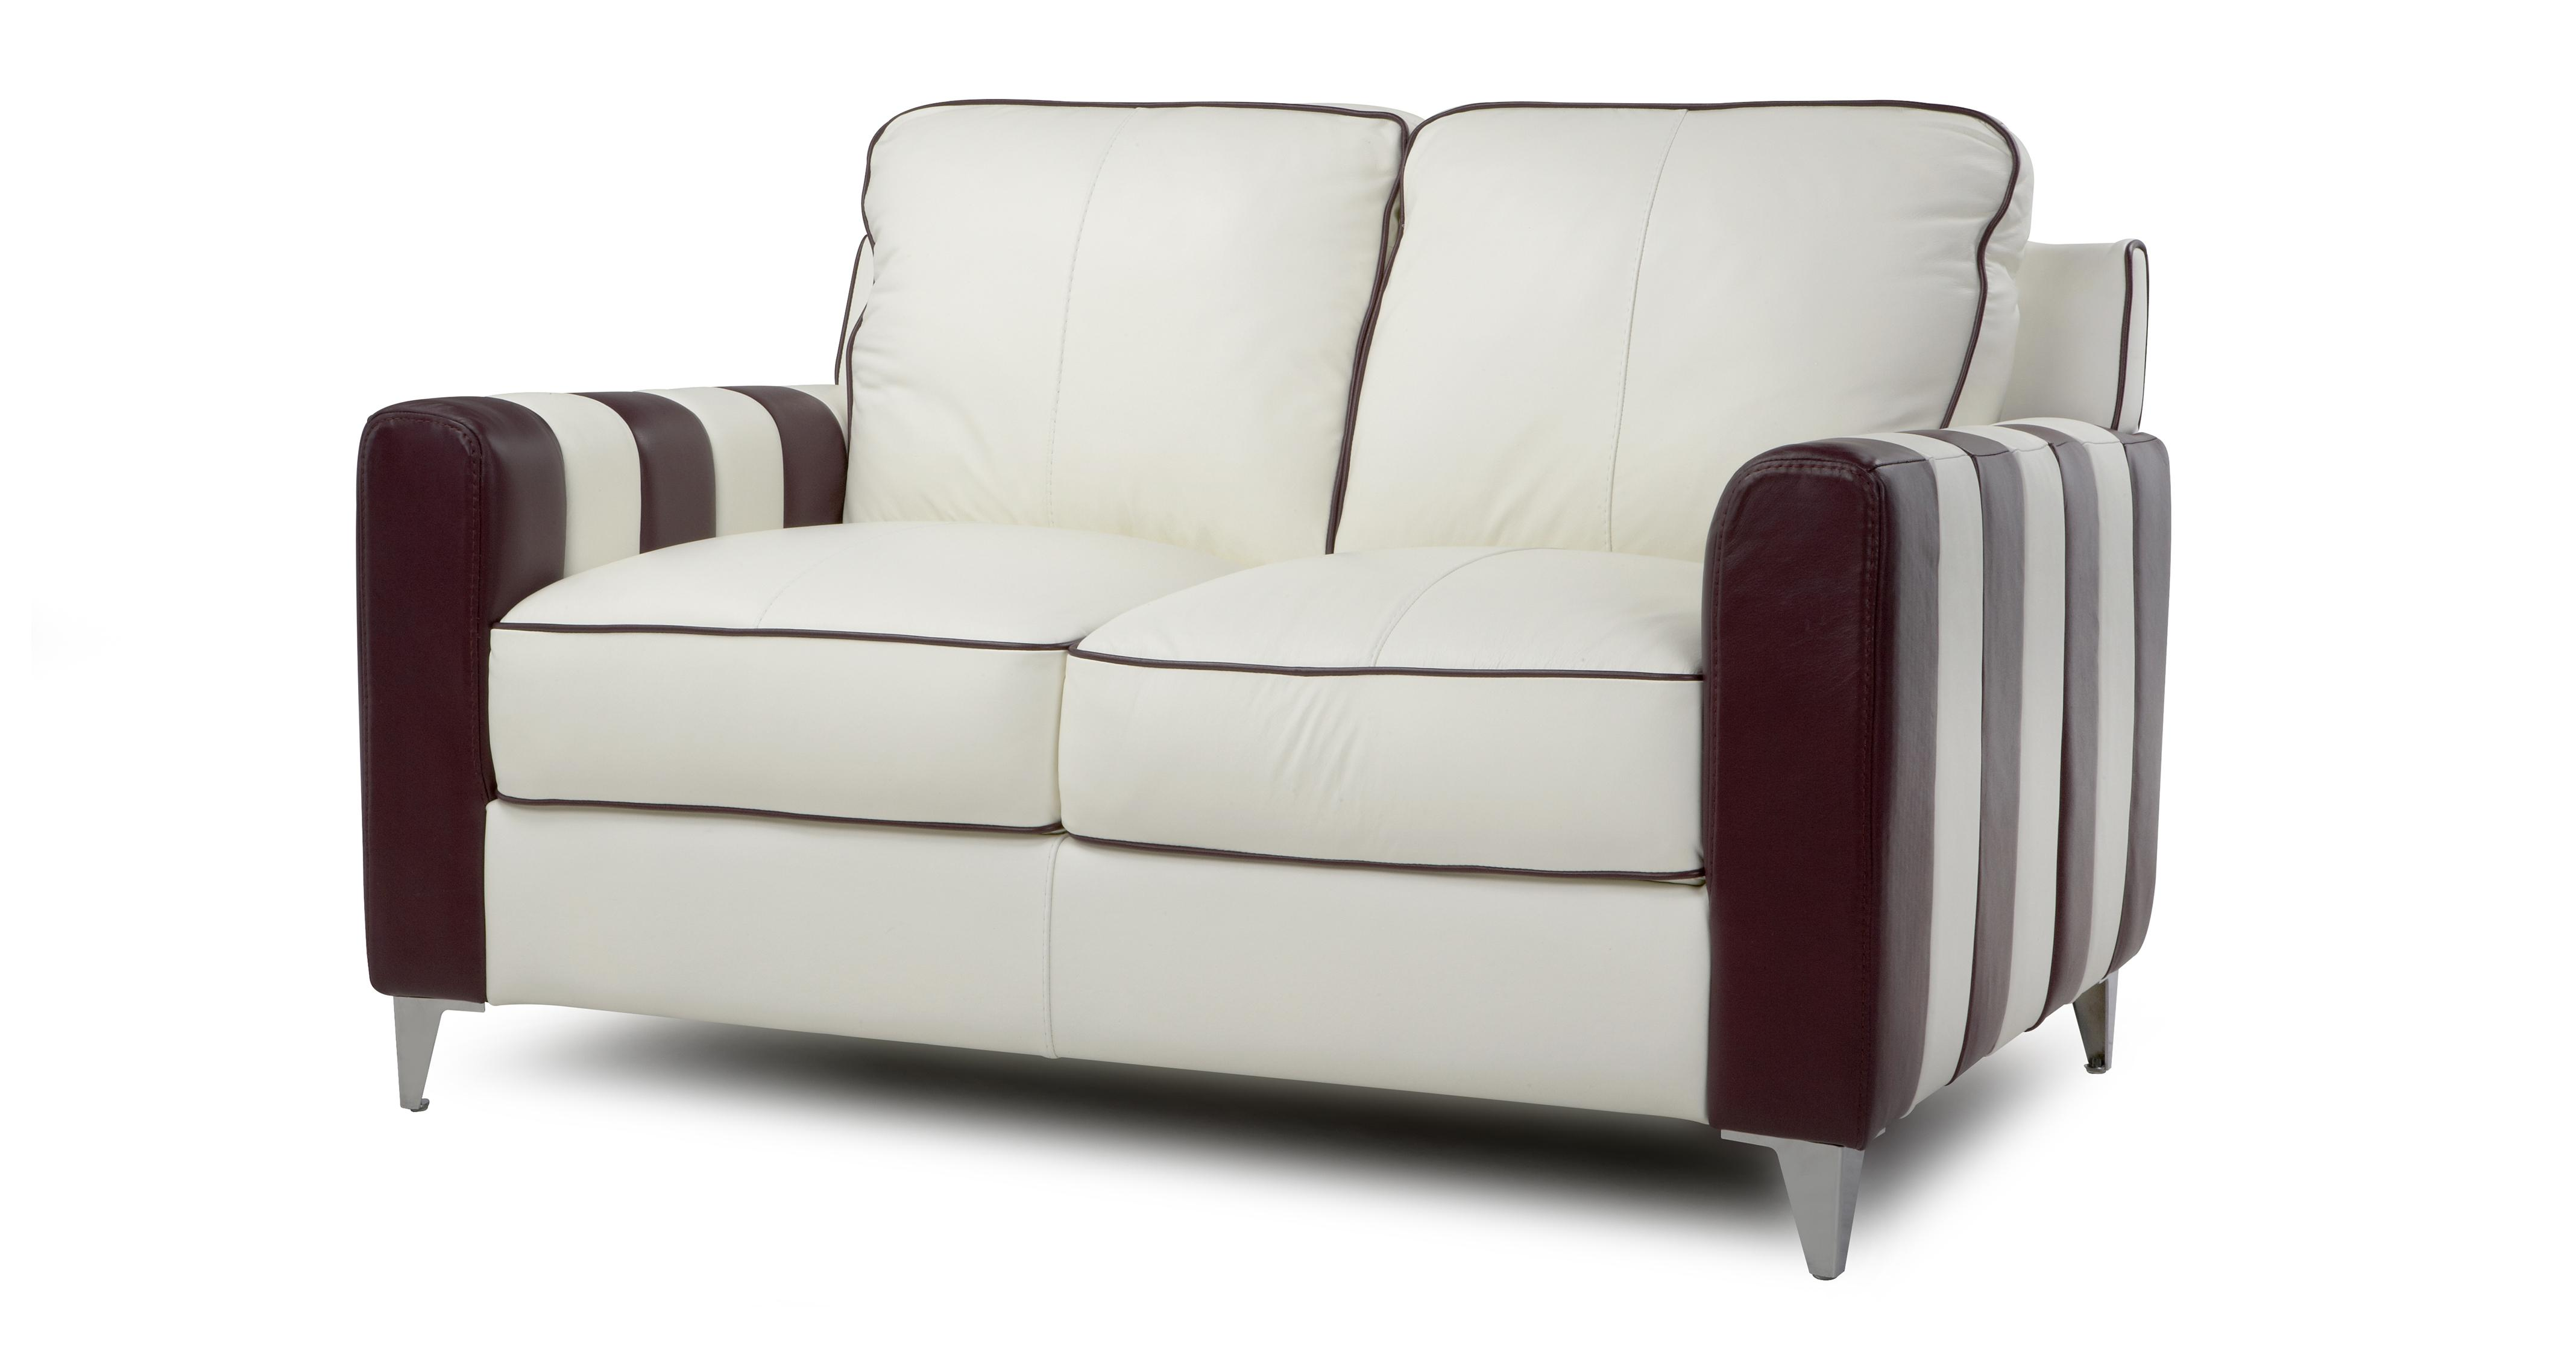 2 seater leather sofas at dfs sofa com bed furniture kitchen